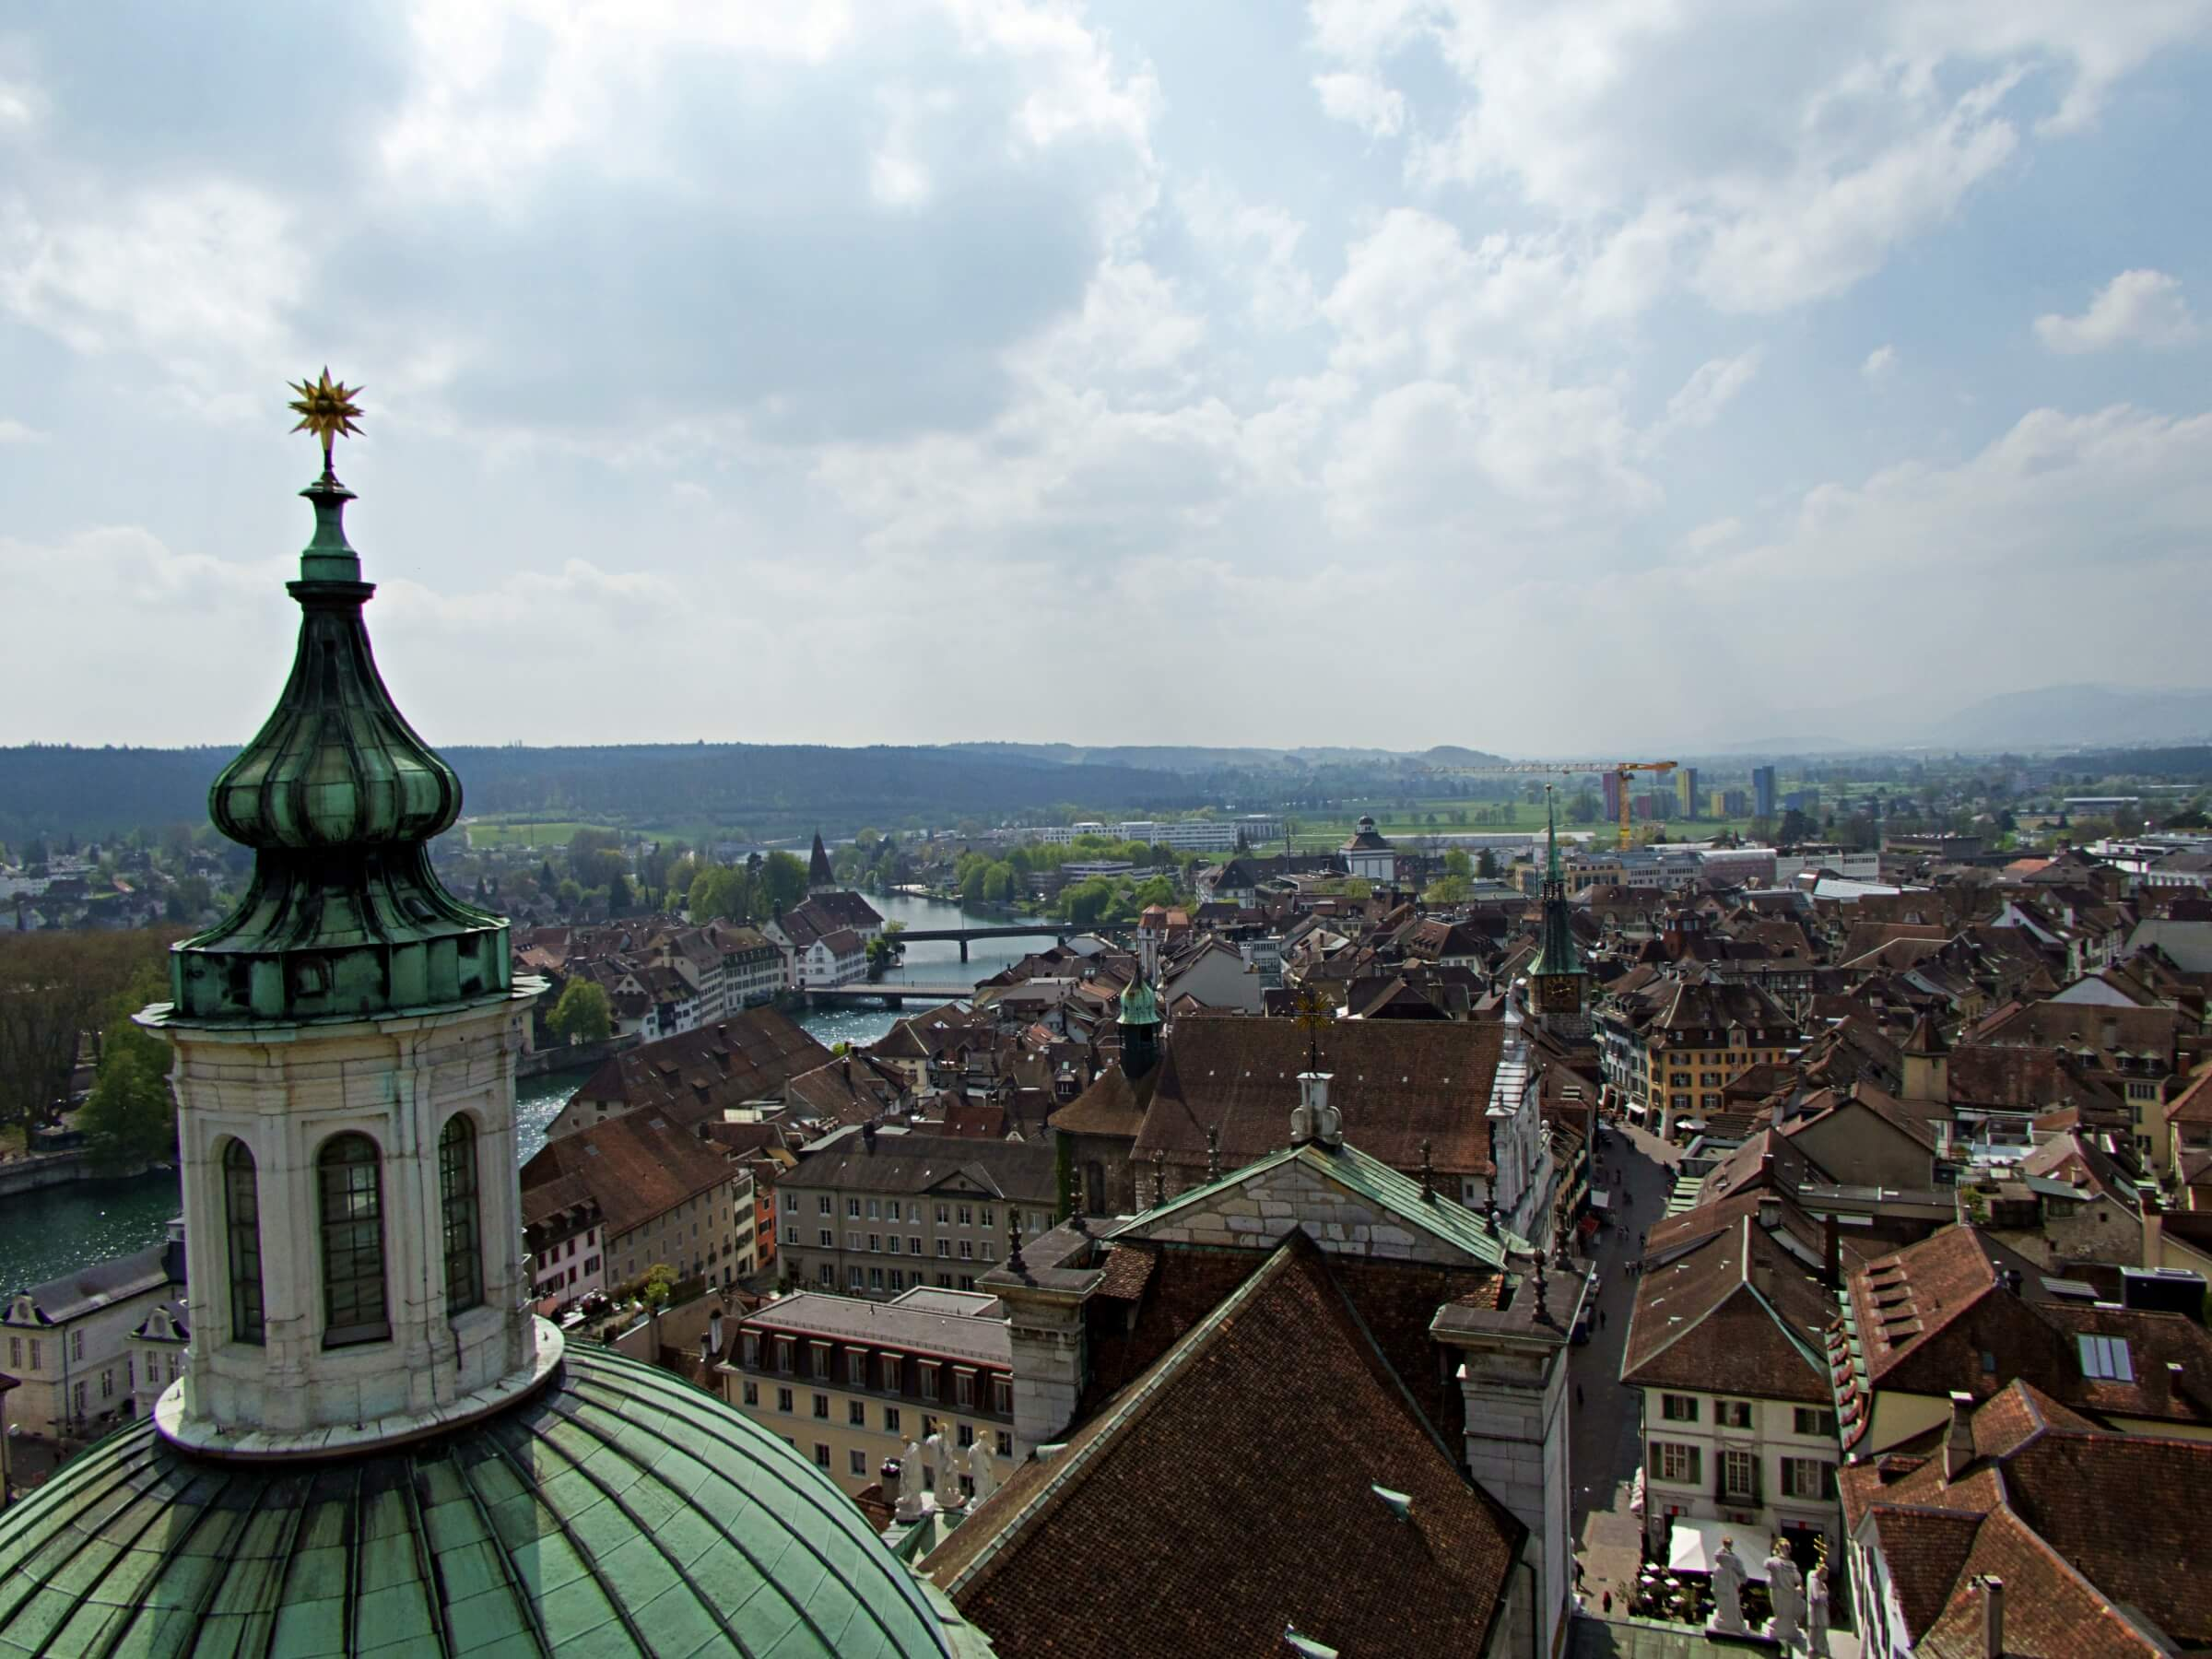 Climb the tower of St. Ursus Cathedral to enjoy great views over the city.